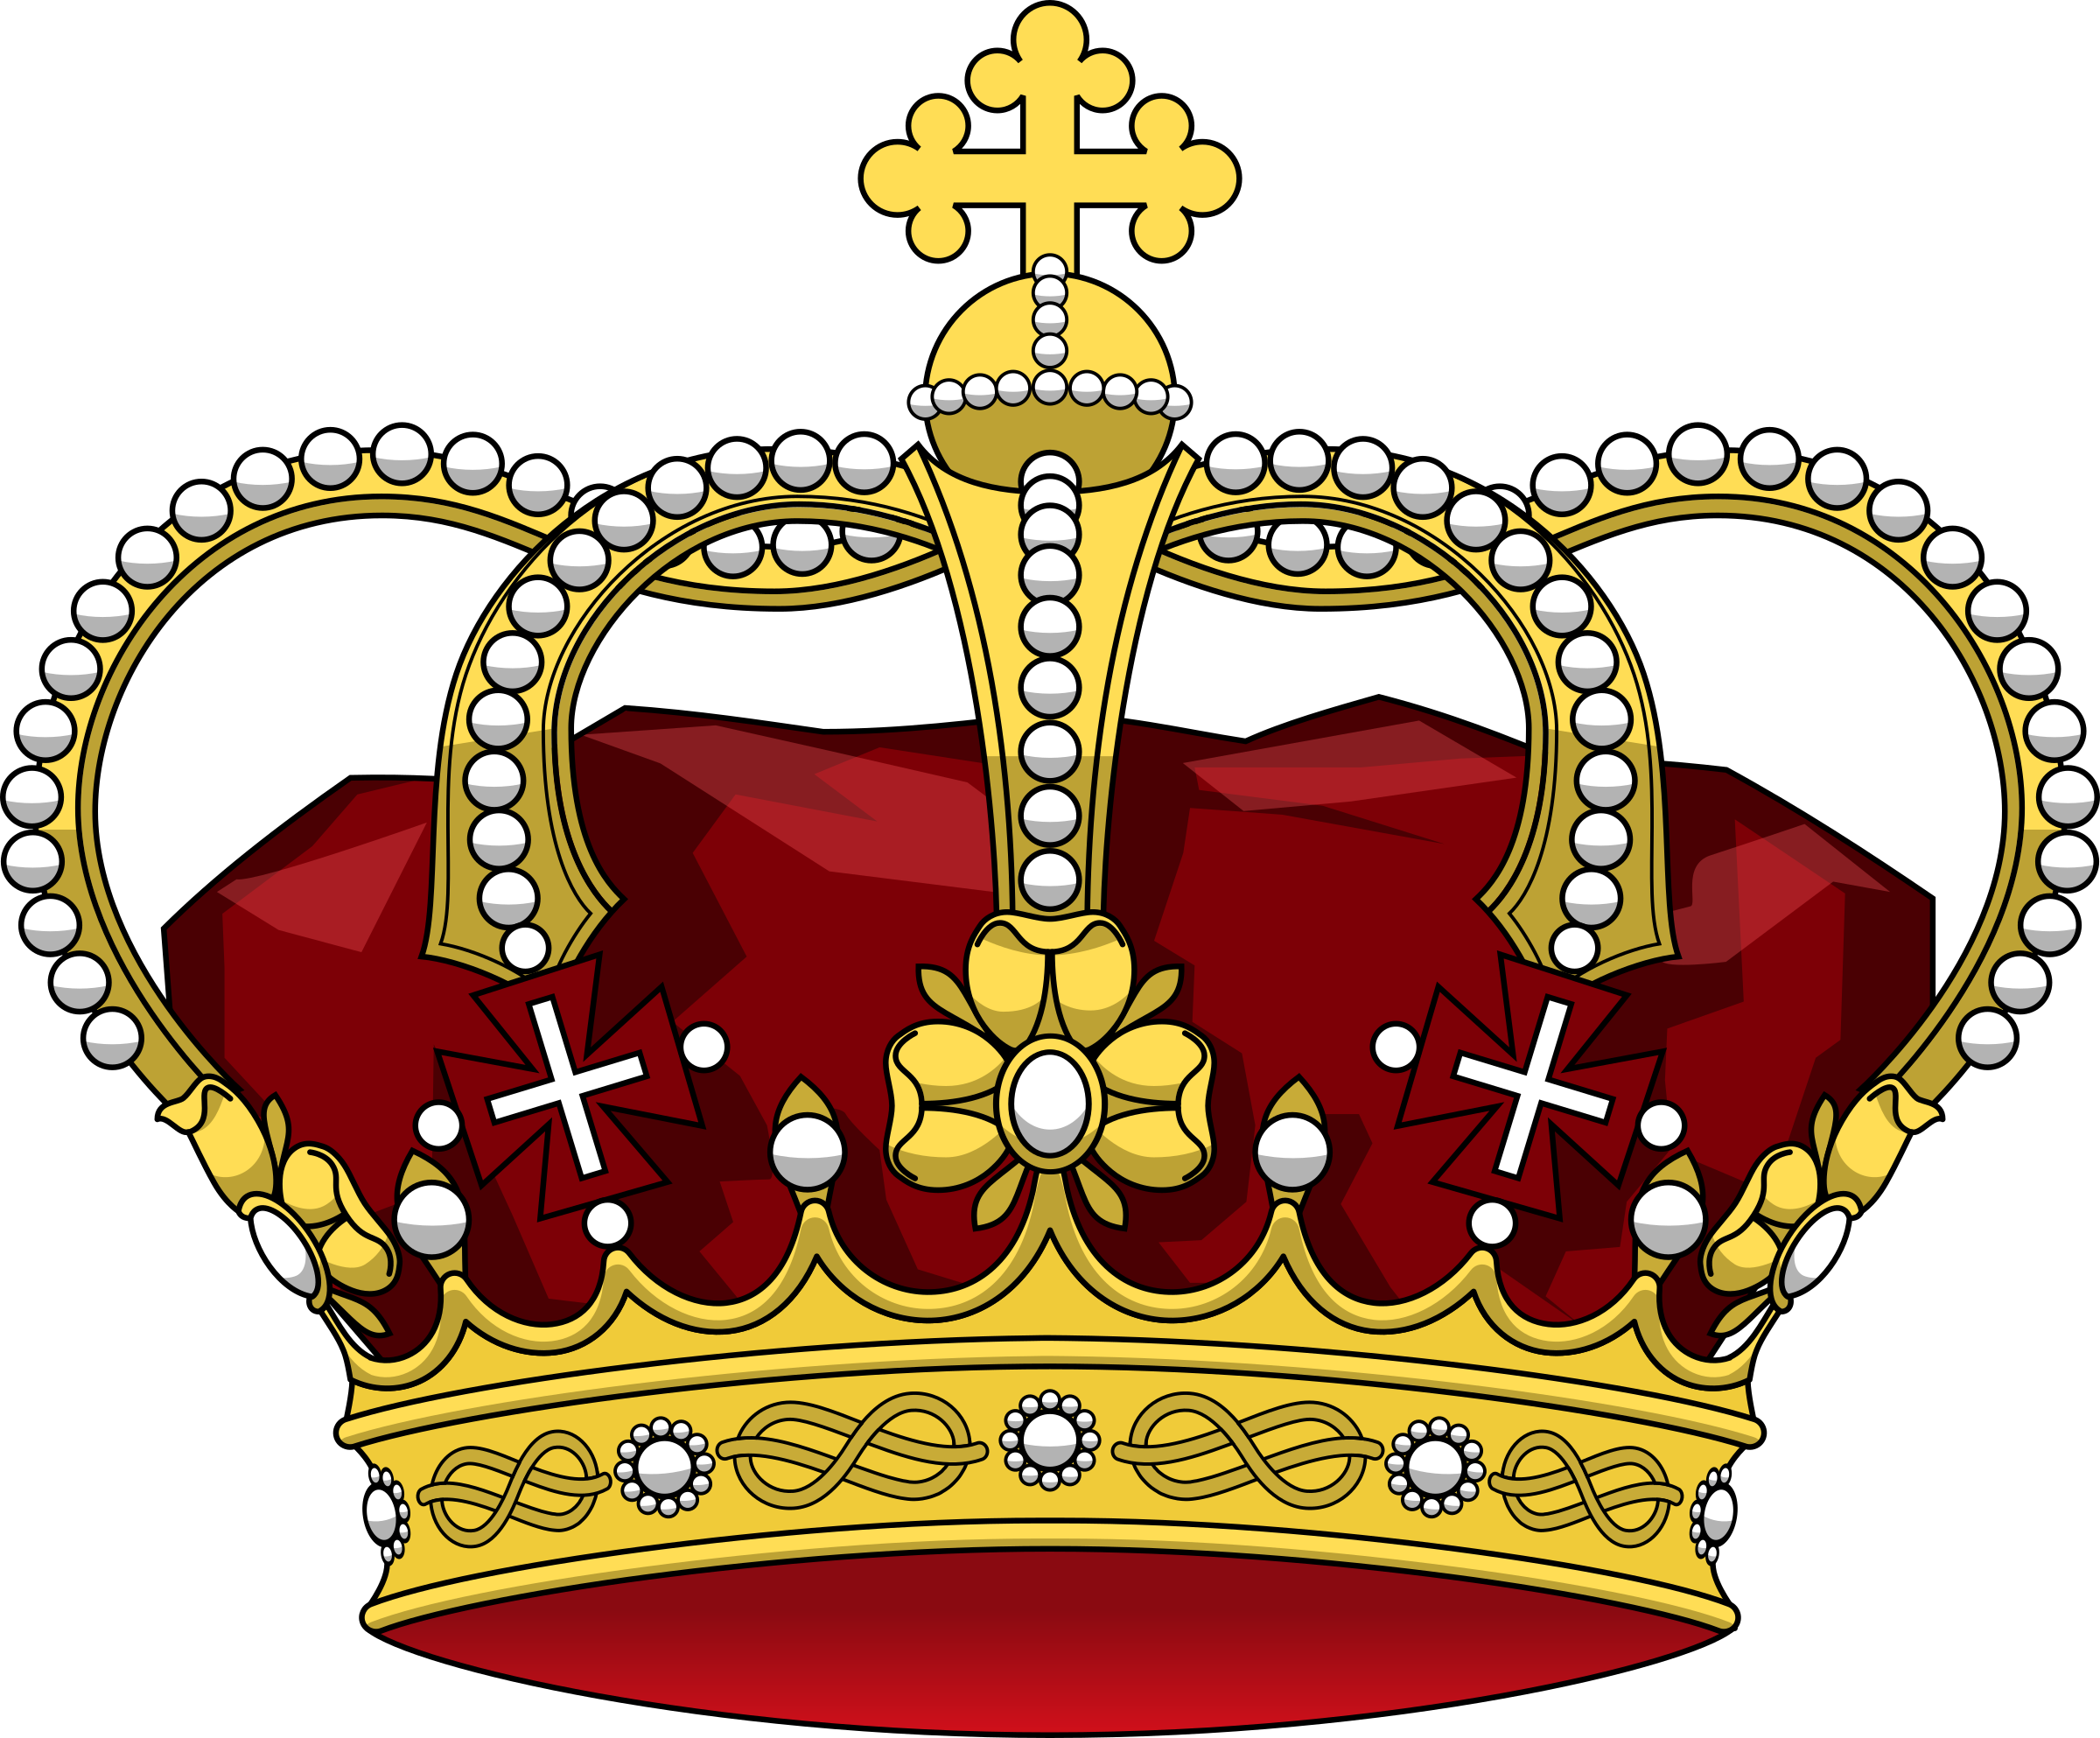 Crowns clipart king, Crowns king Transparent FREE for ...